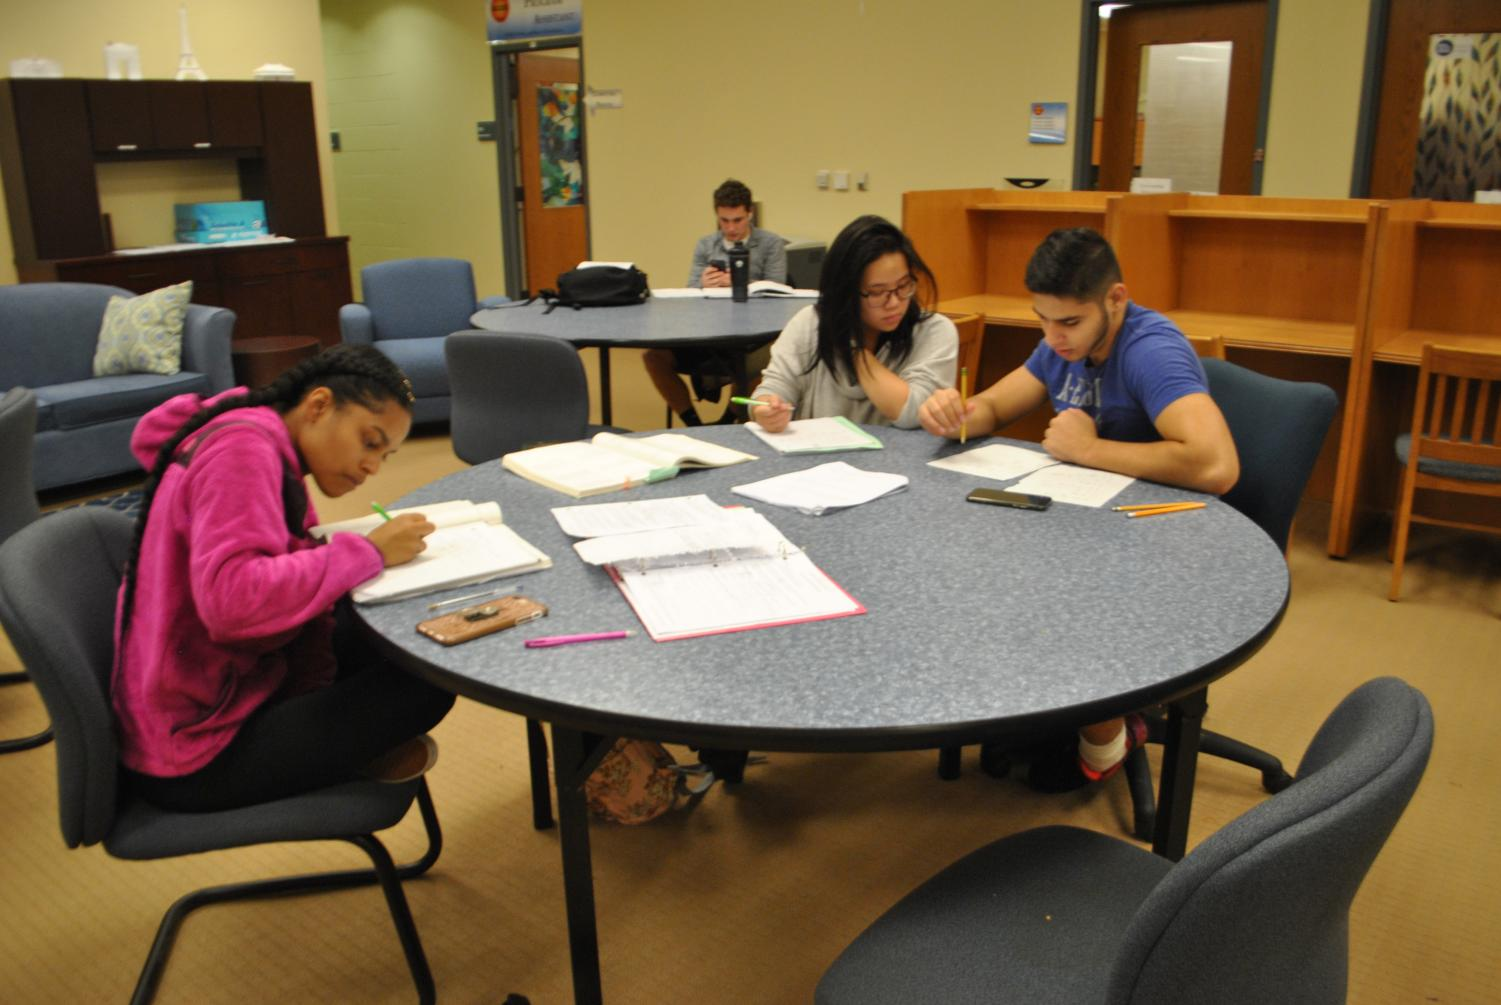 (Left to right) Students Jordyn Ford, Kaila Yuazon and Muhammad Quraishy work on math problems at drop-in tutoring in the Academic Success Center last week.